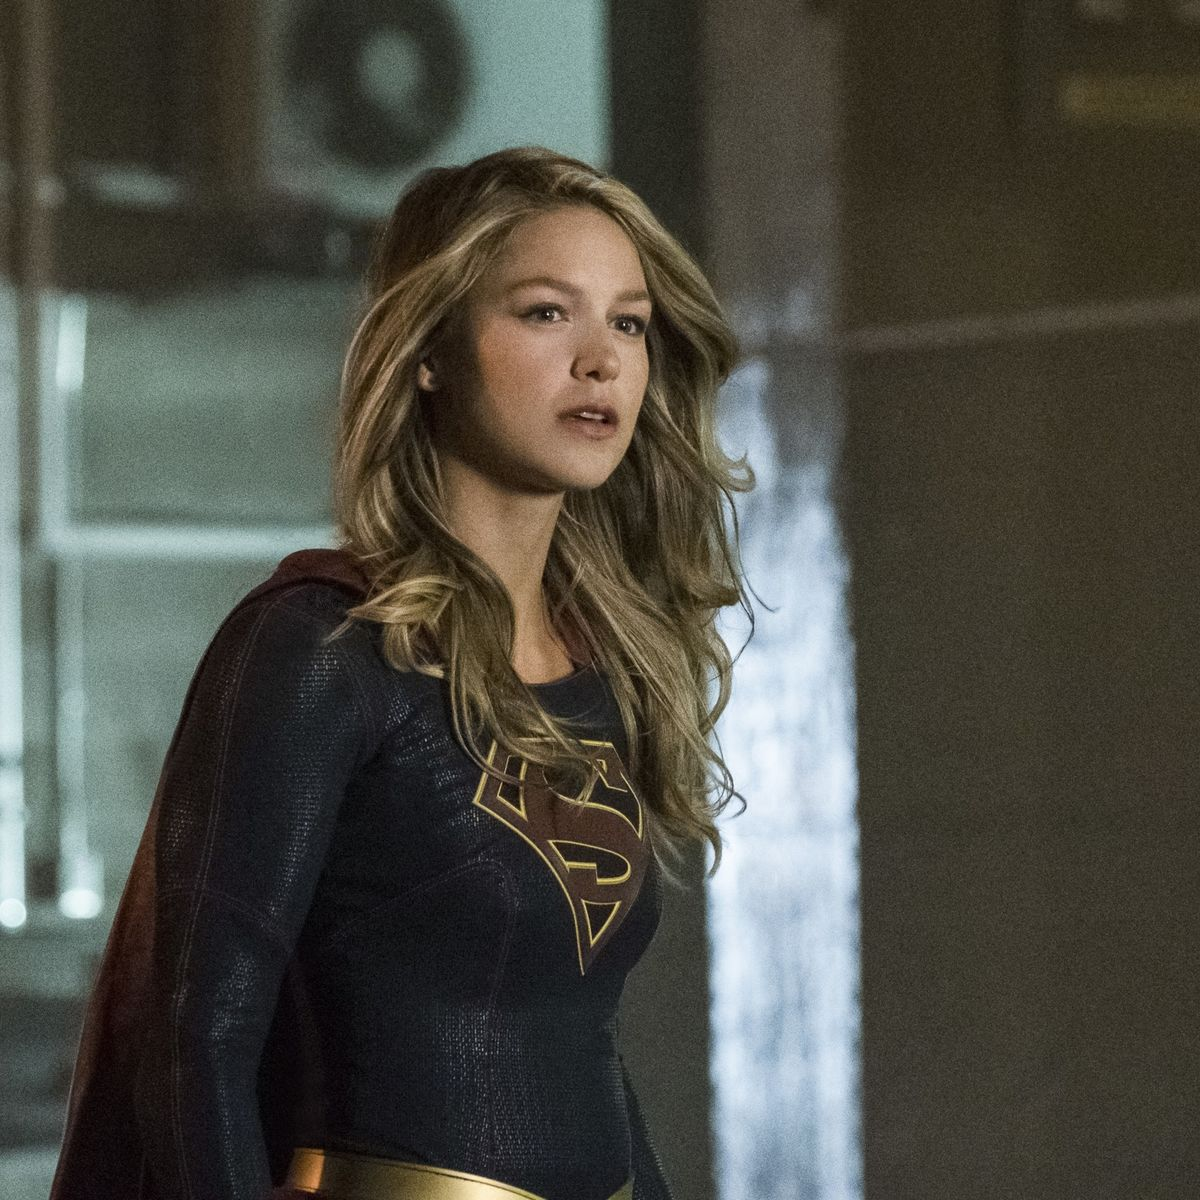 'Supergirl' to feature television's first transgender superhero